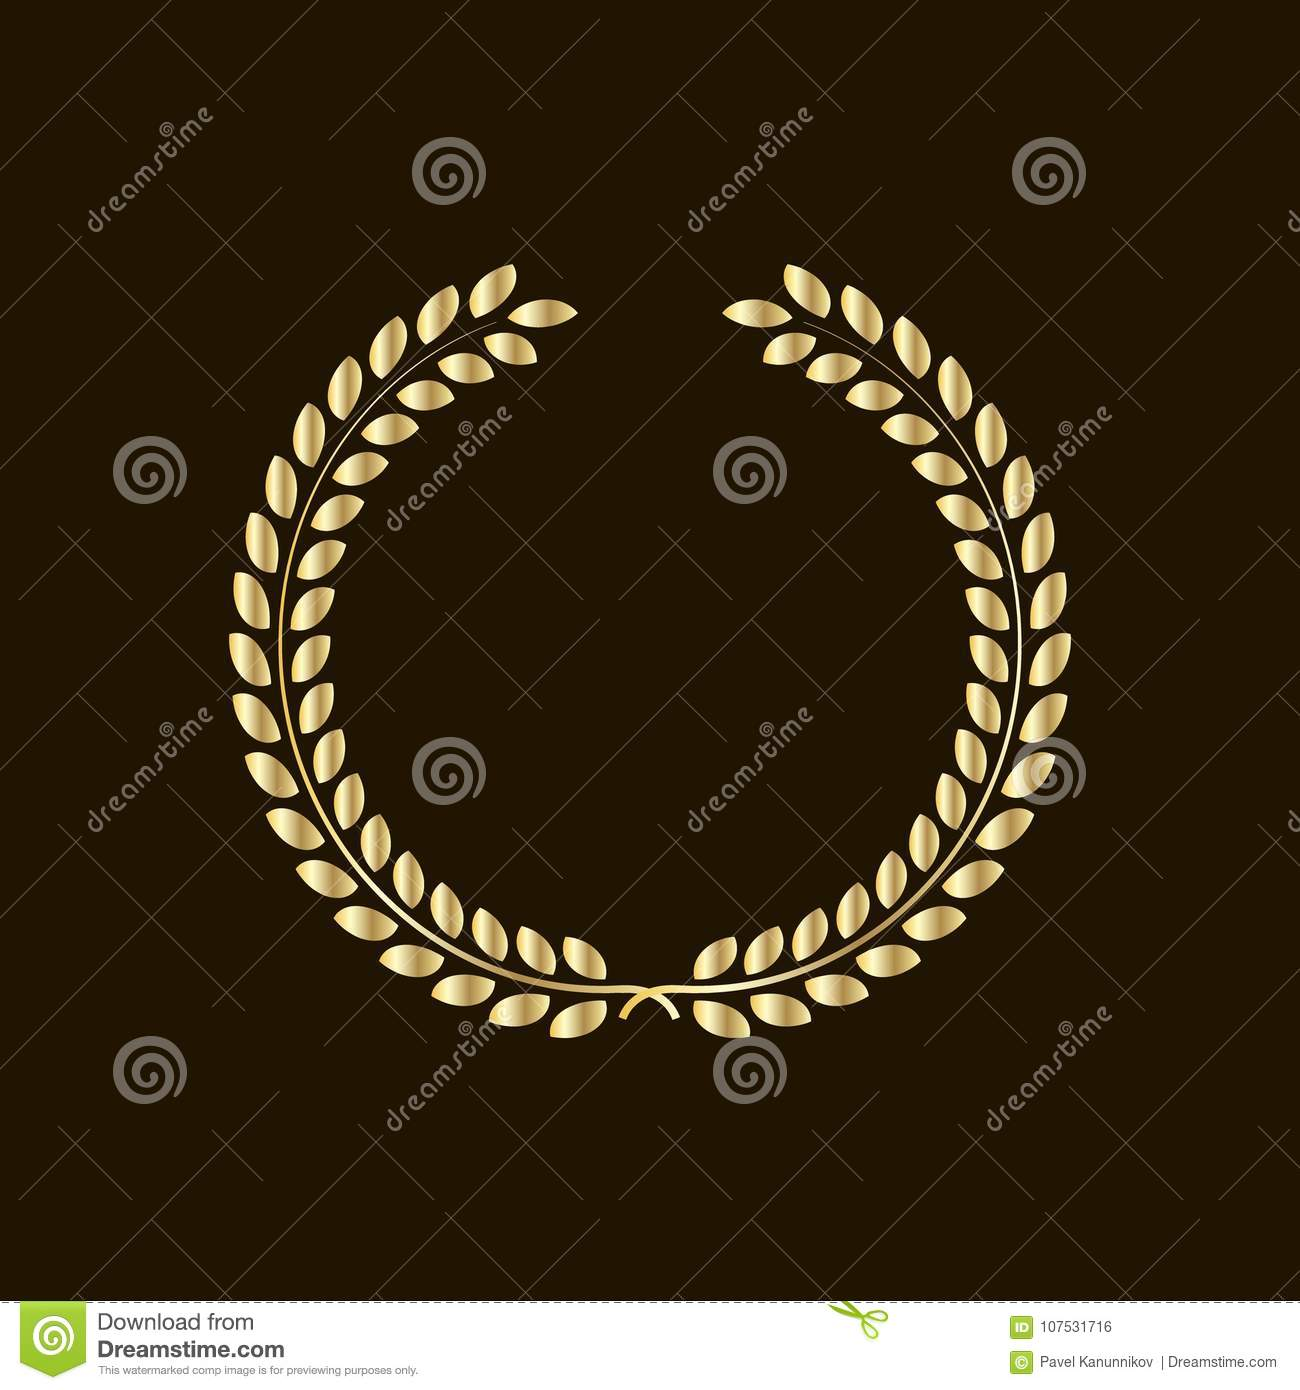 Laurel wreath - symbol of victory and power flat icon for websites